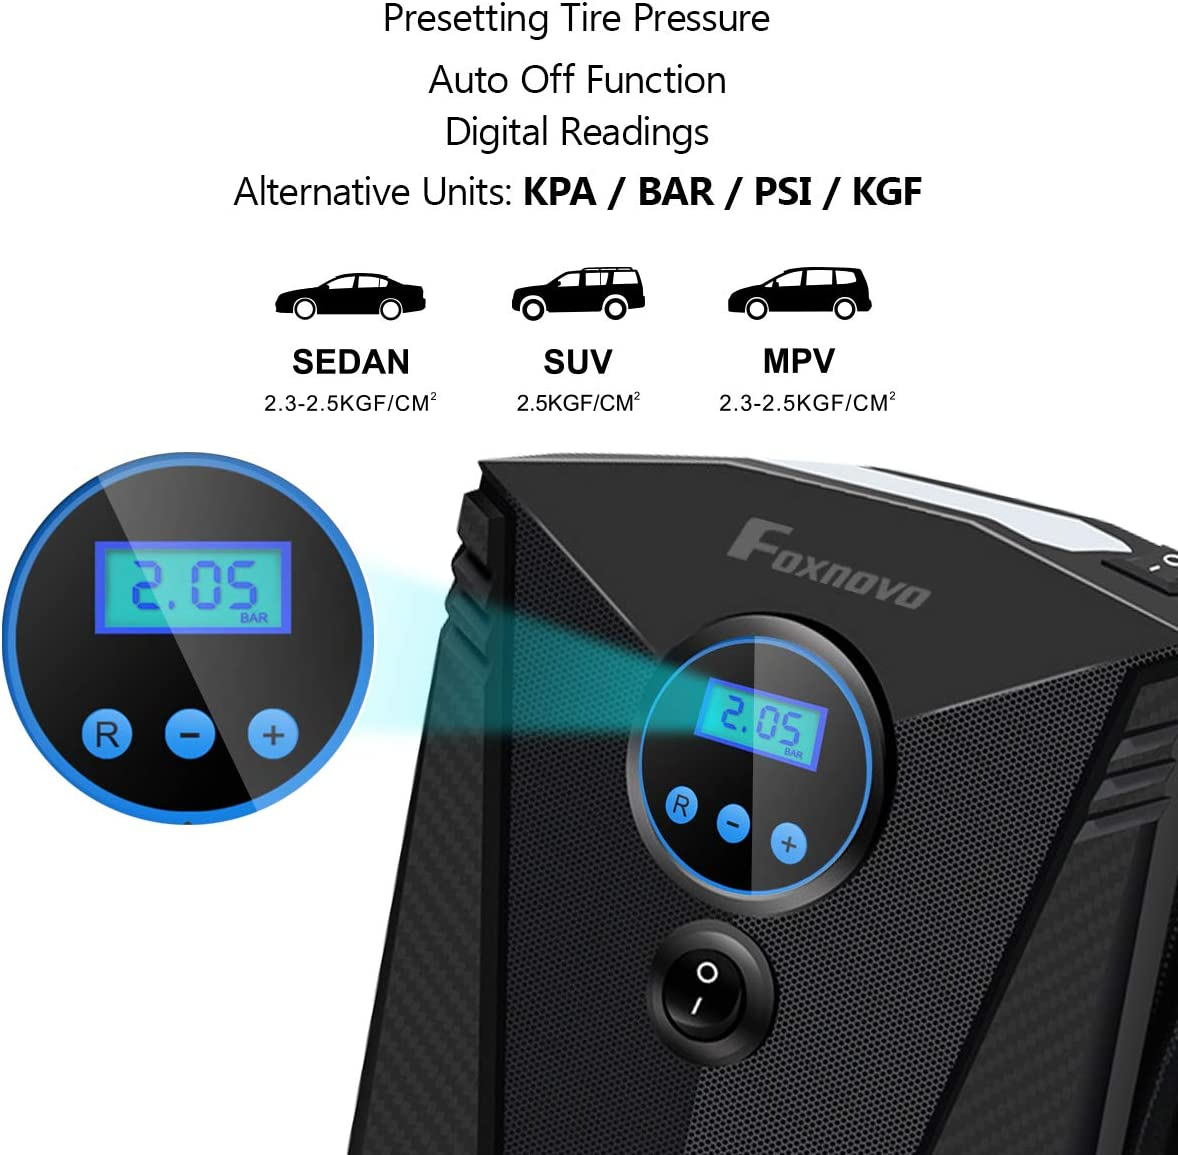 Emergency Led Lighting /& Long Cable for Car Foxnovo Tire Inflator for Car//Portable Air Compressor//Car Tire Pump//Auto Tire Pump with Pressure Gauge Auto Shut Off Easy to Store